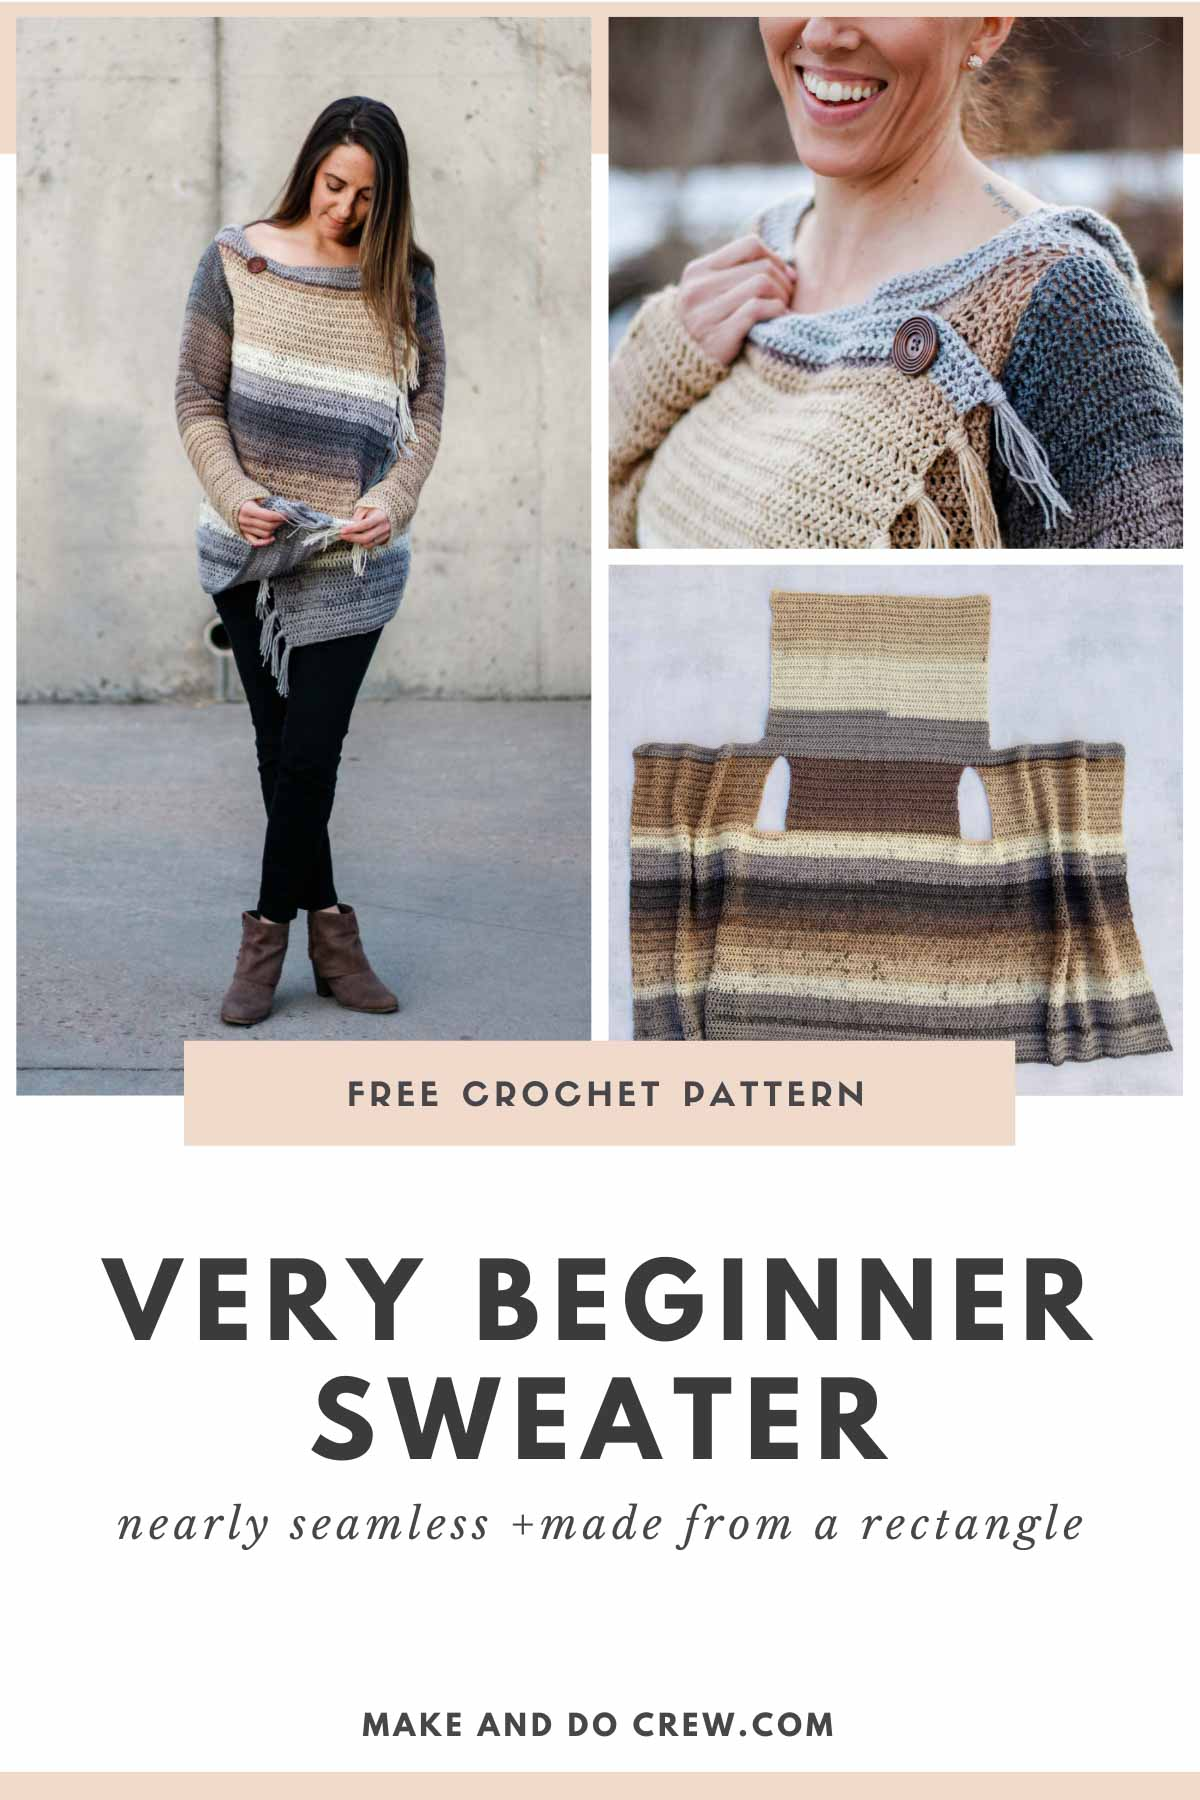 The main body of this free crochet sweater pattern with a hood is worked in one piece, making it almost seamless and very beginner-friendly.